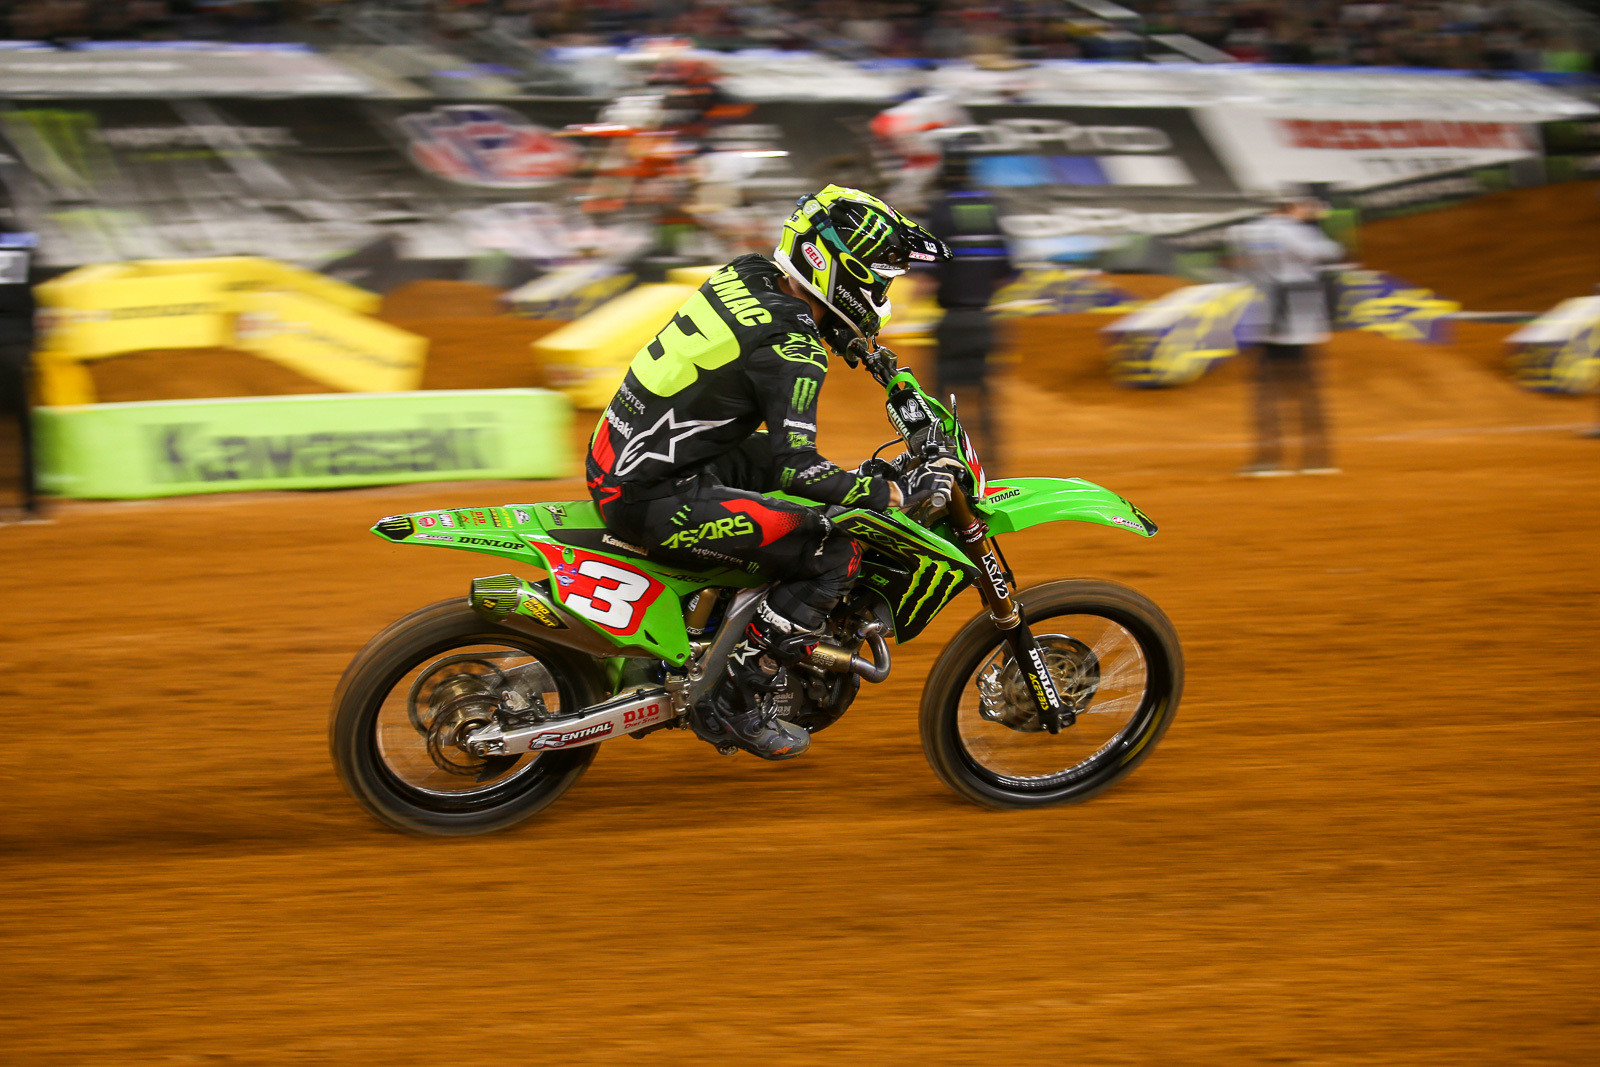 Eli Tomac had no easy path to the overall win, moving up a total of 13 spots during the night.